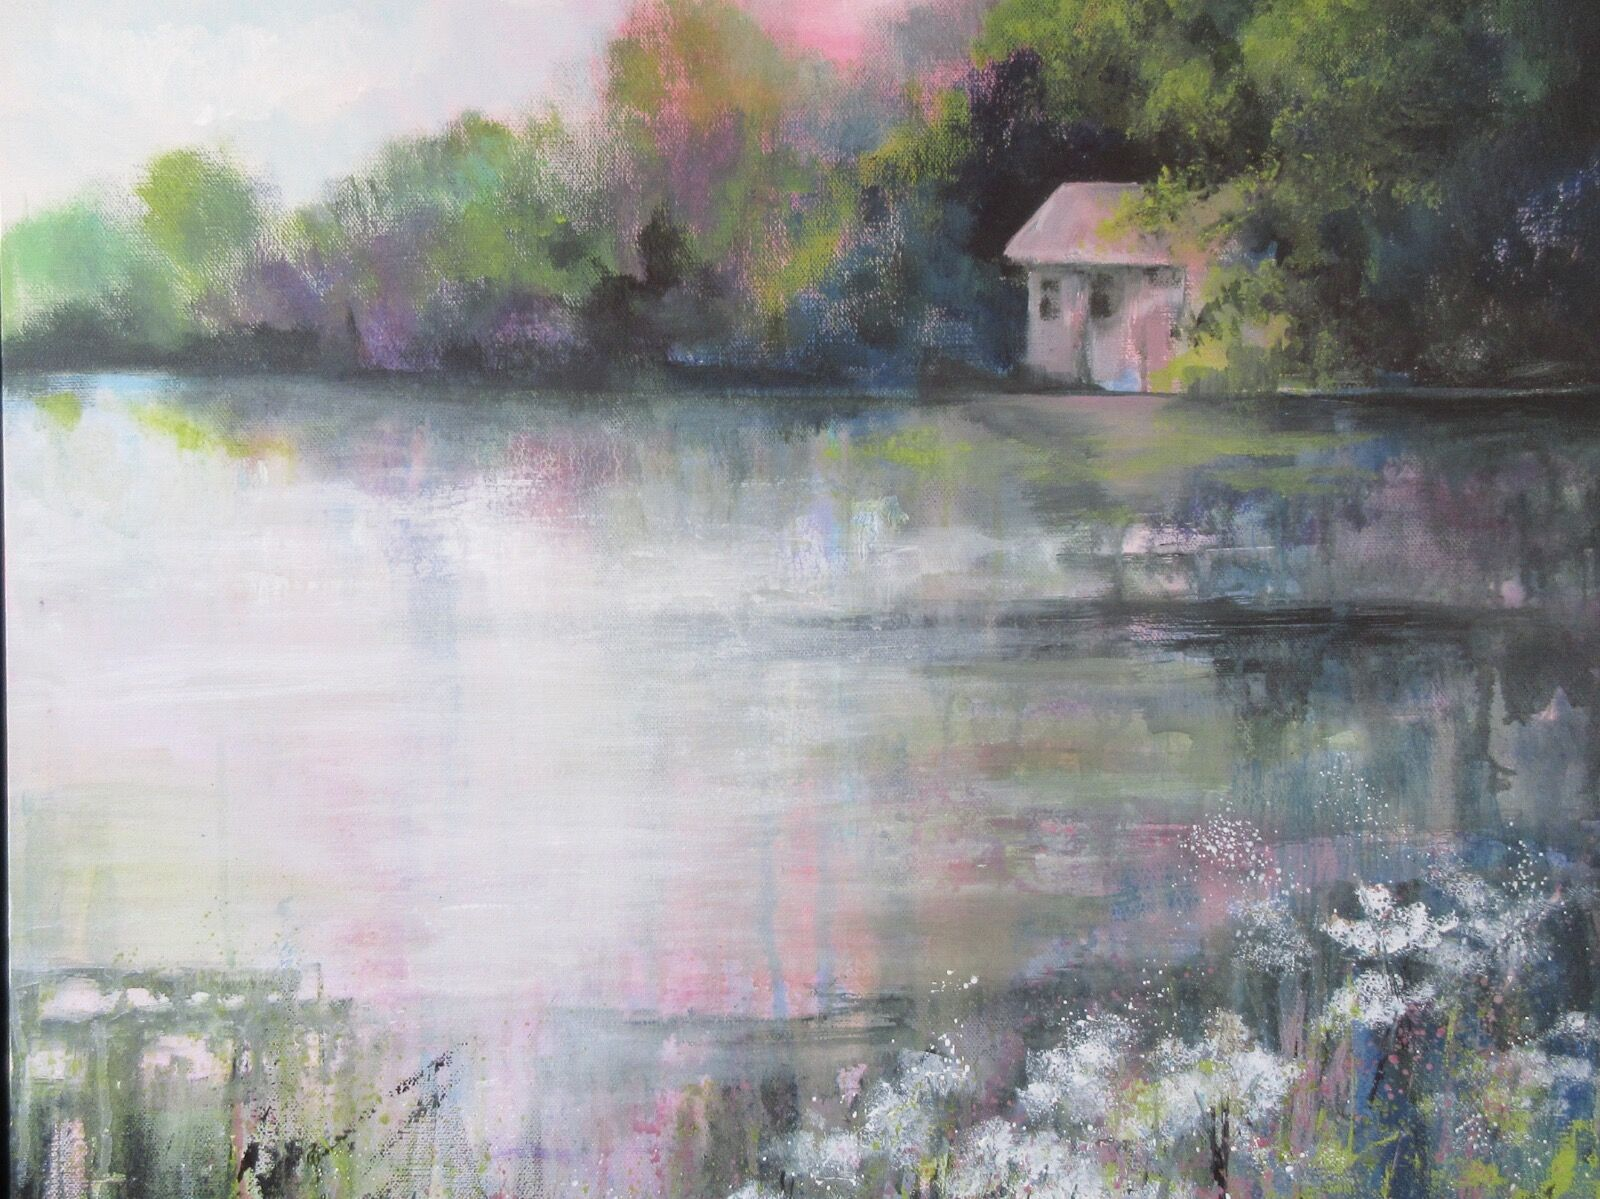 Hackthorn Pond painting